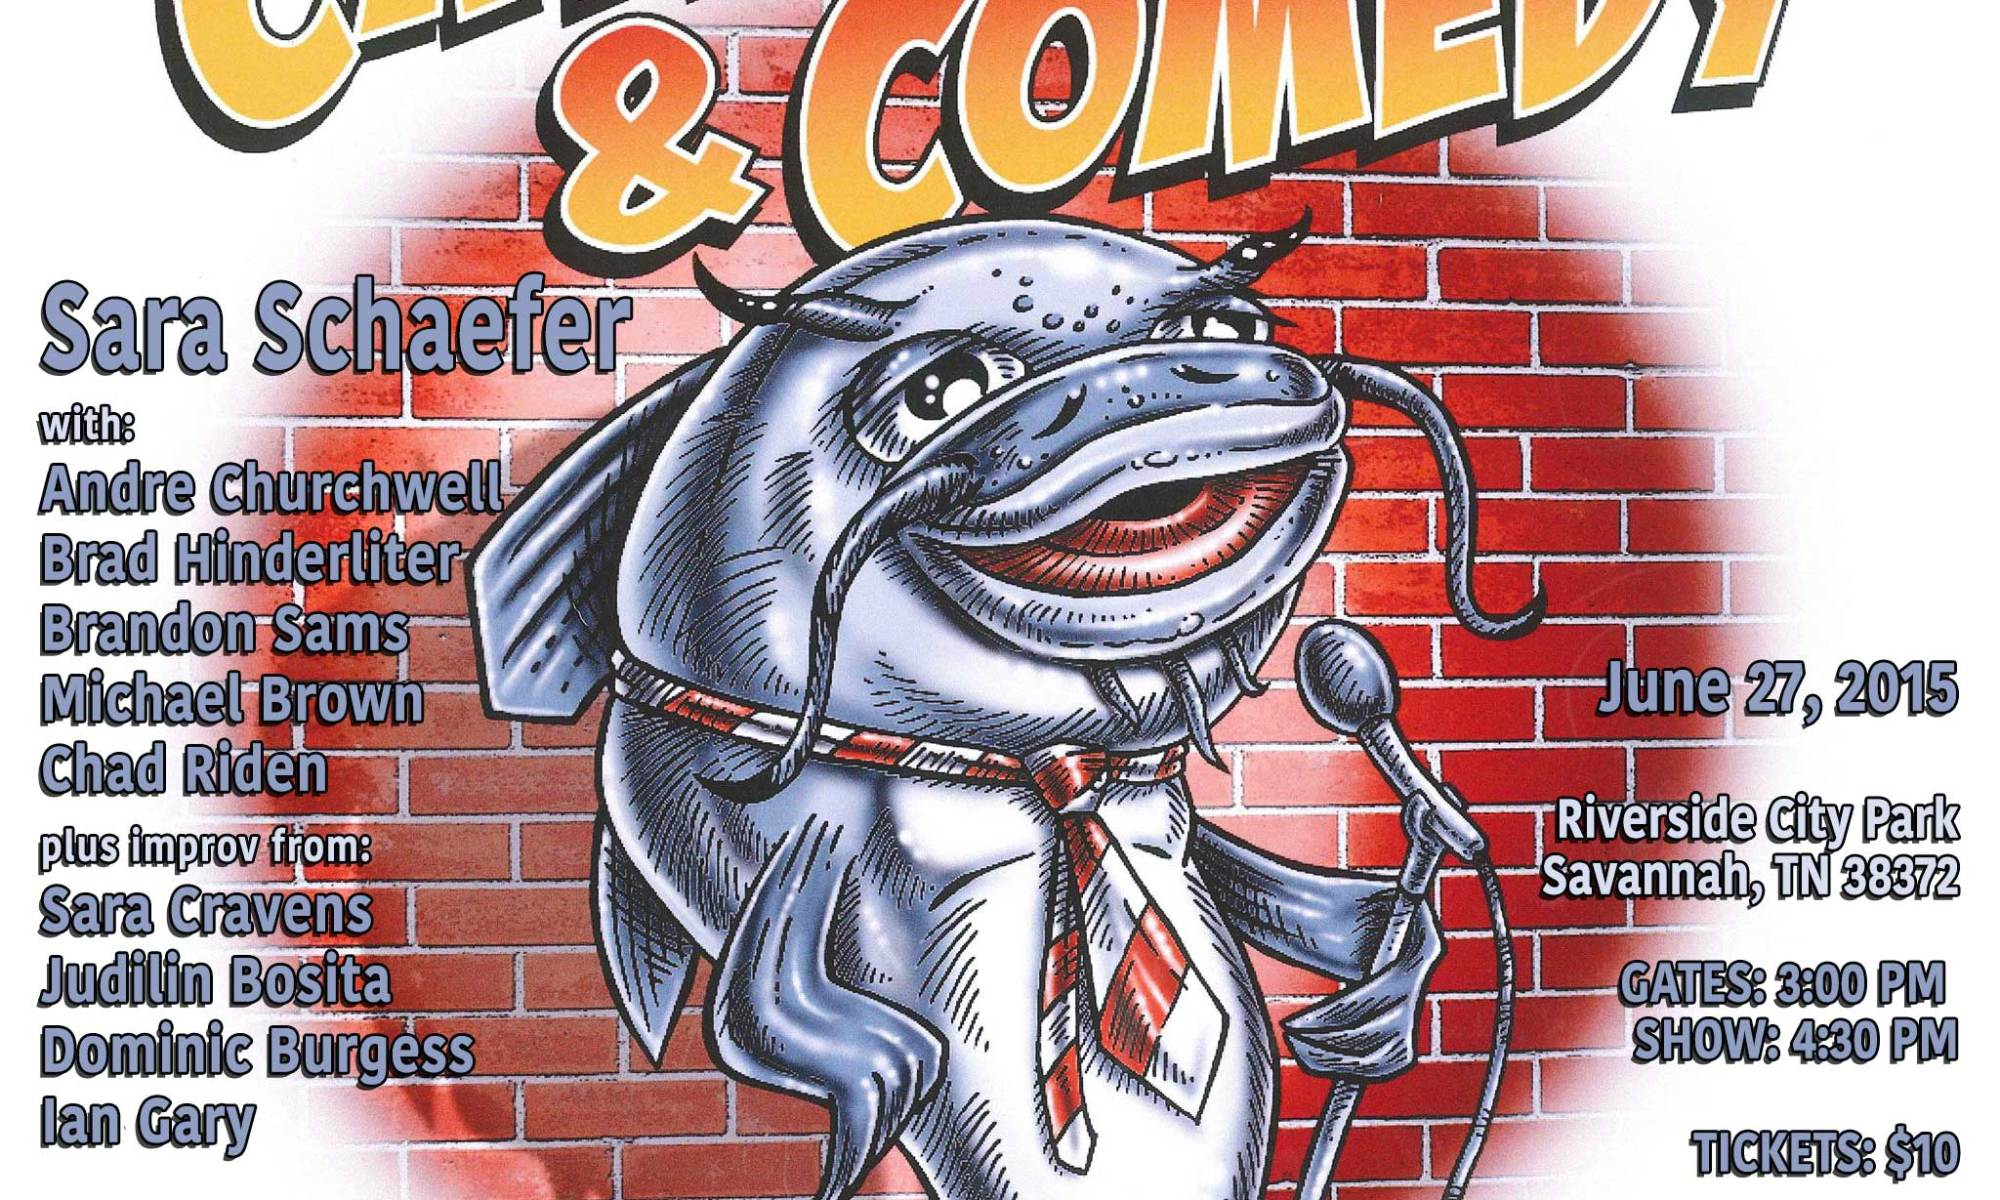 Savannah, TN's Catfish and Comedy Festival 6/27/2015